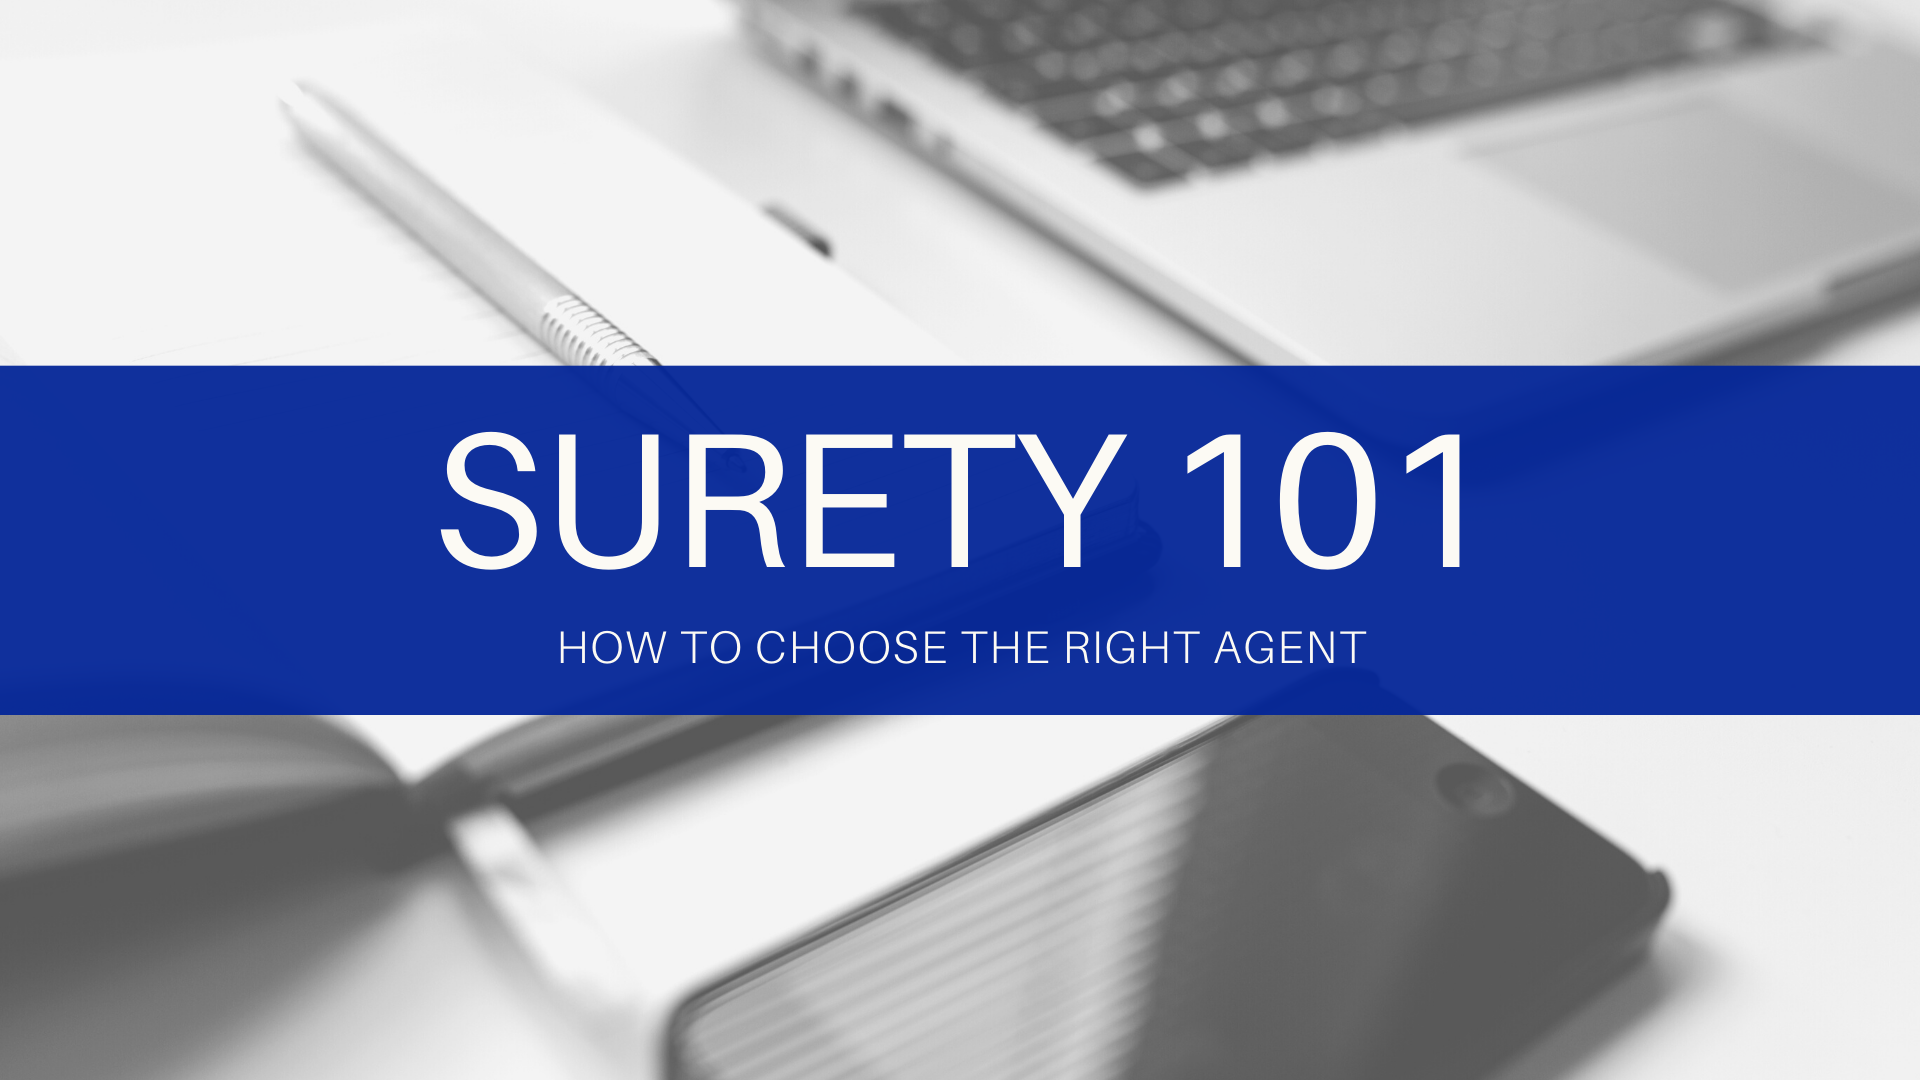 Surety Bond 101 - How To Choose The Right Agent